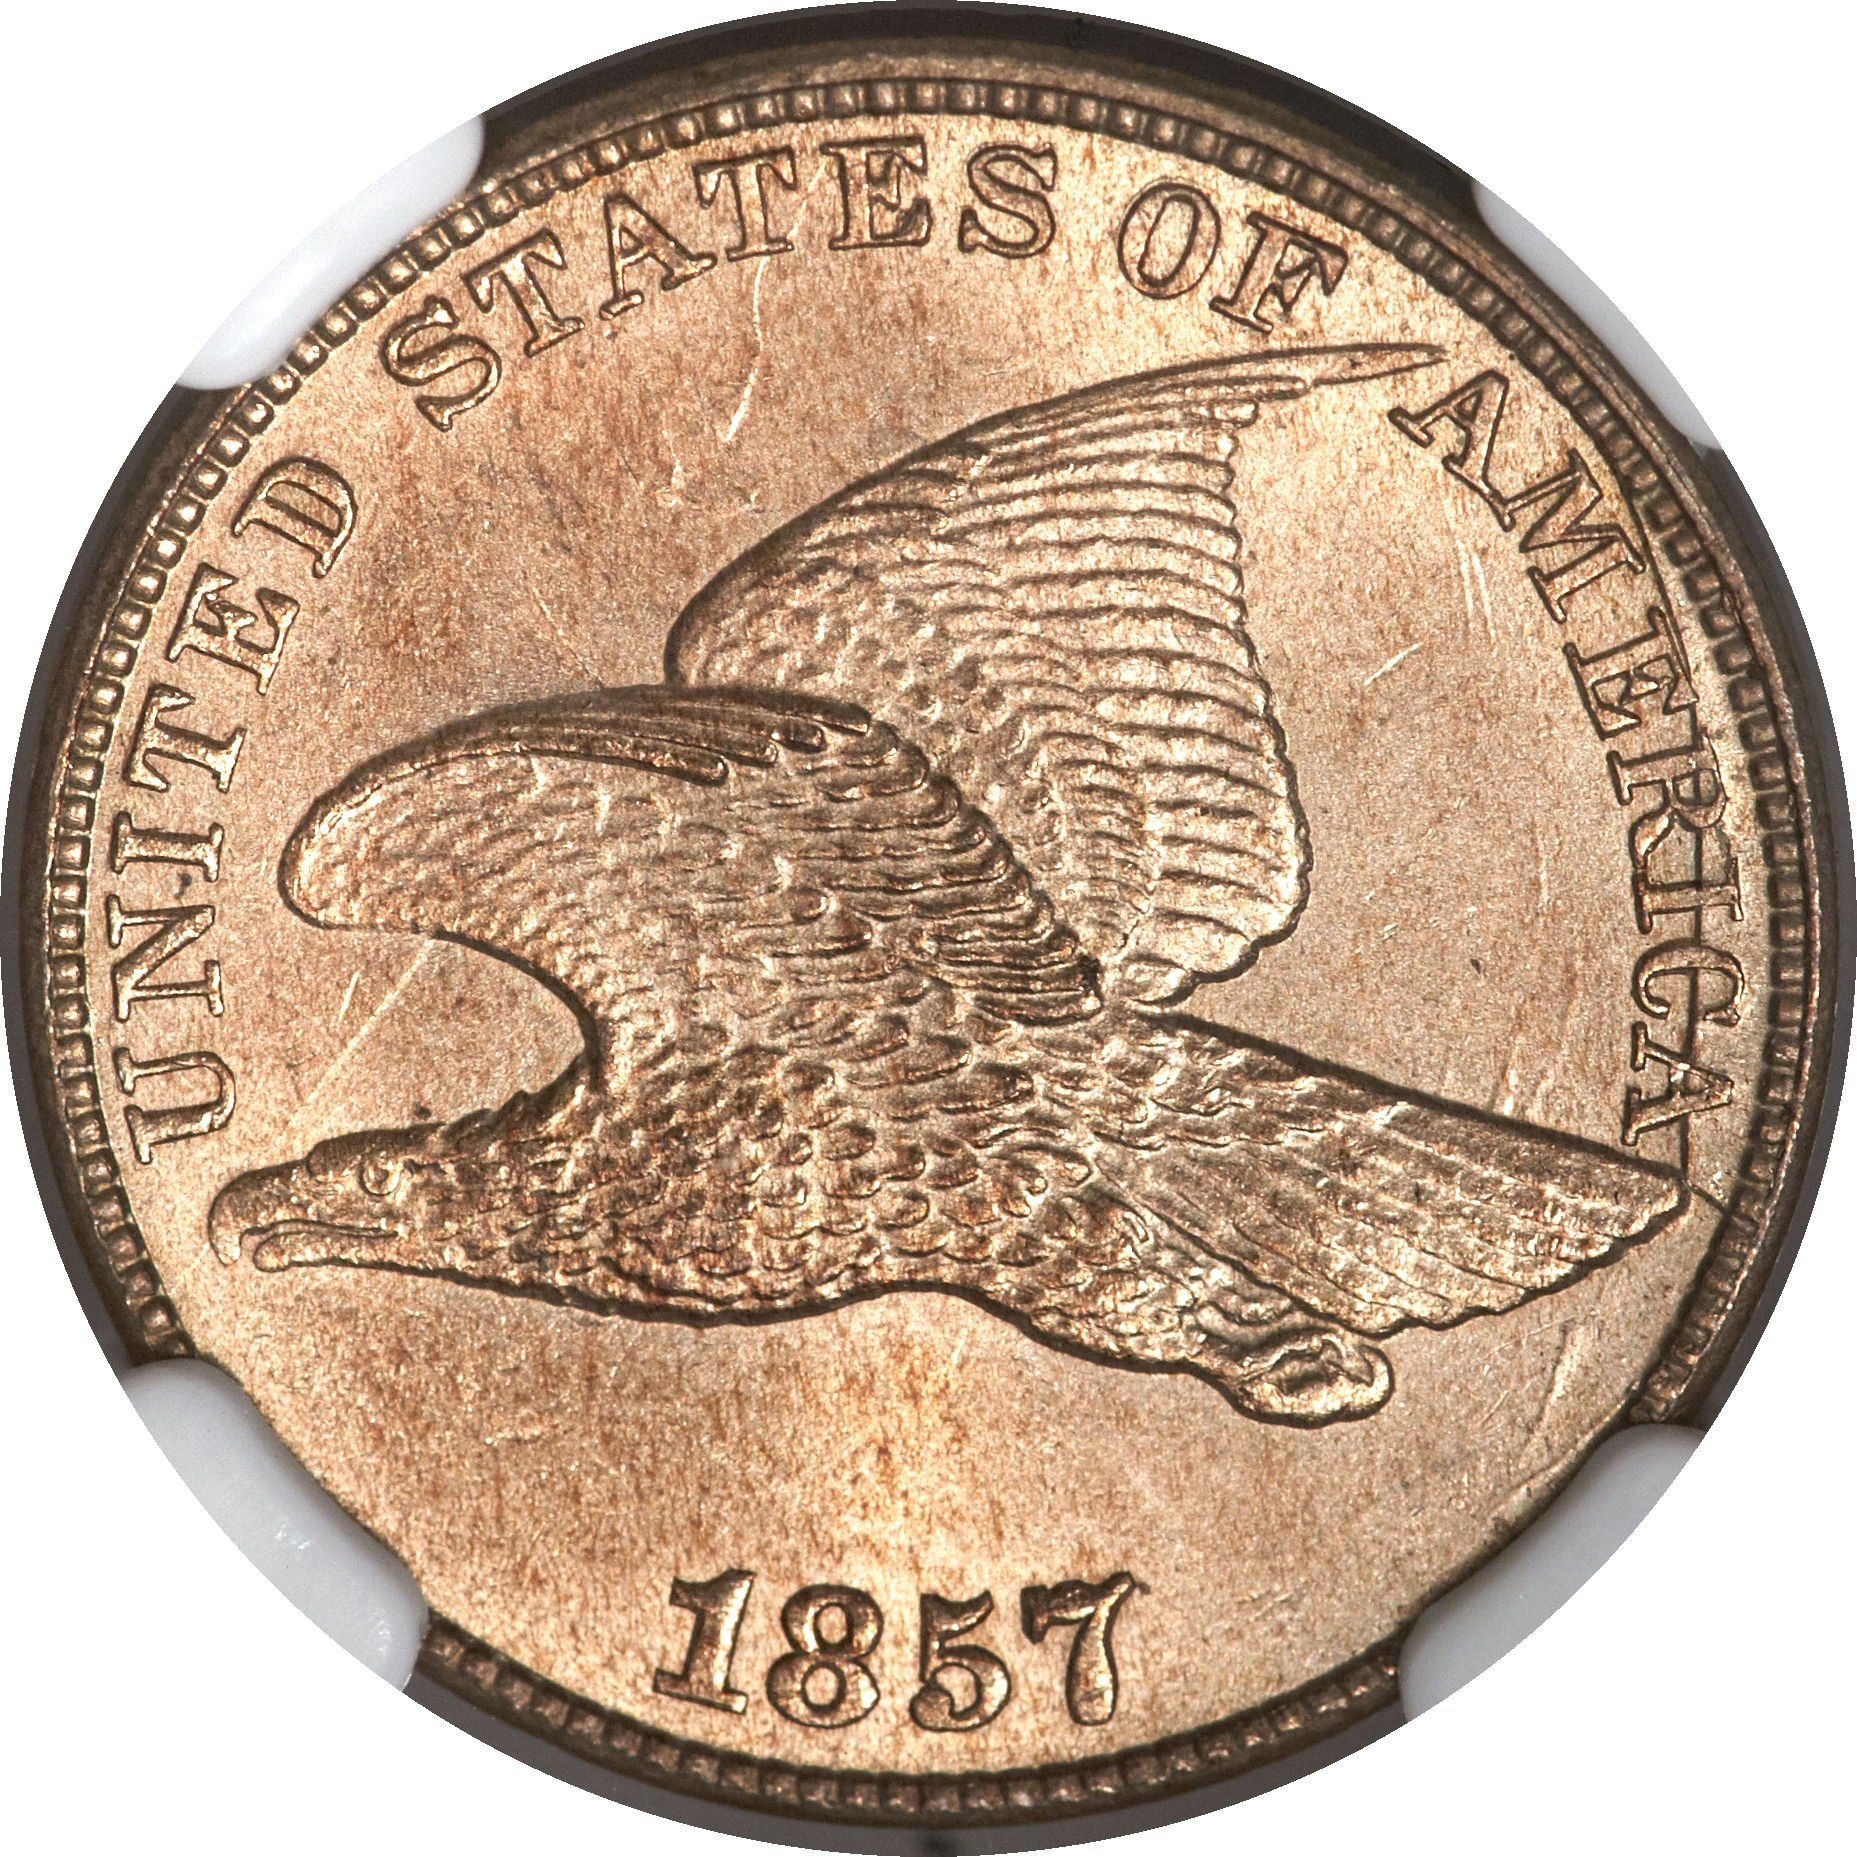 1857 MDC-003 Flying Eagle Penny - Photo Courtesy of Heritage Auctions